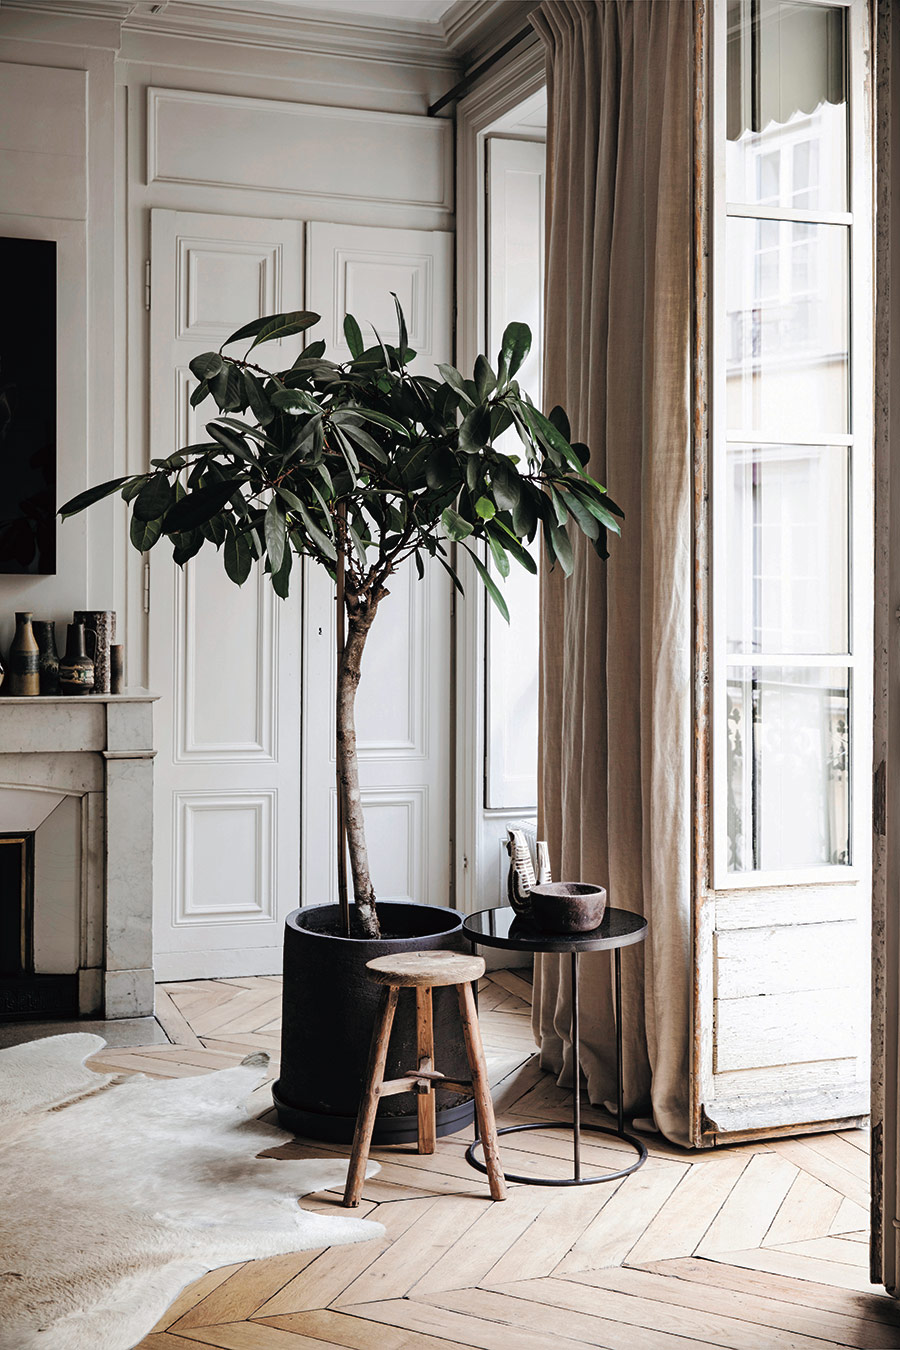 Interiors the art of simple living this is home for The art of minimalist living